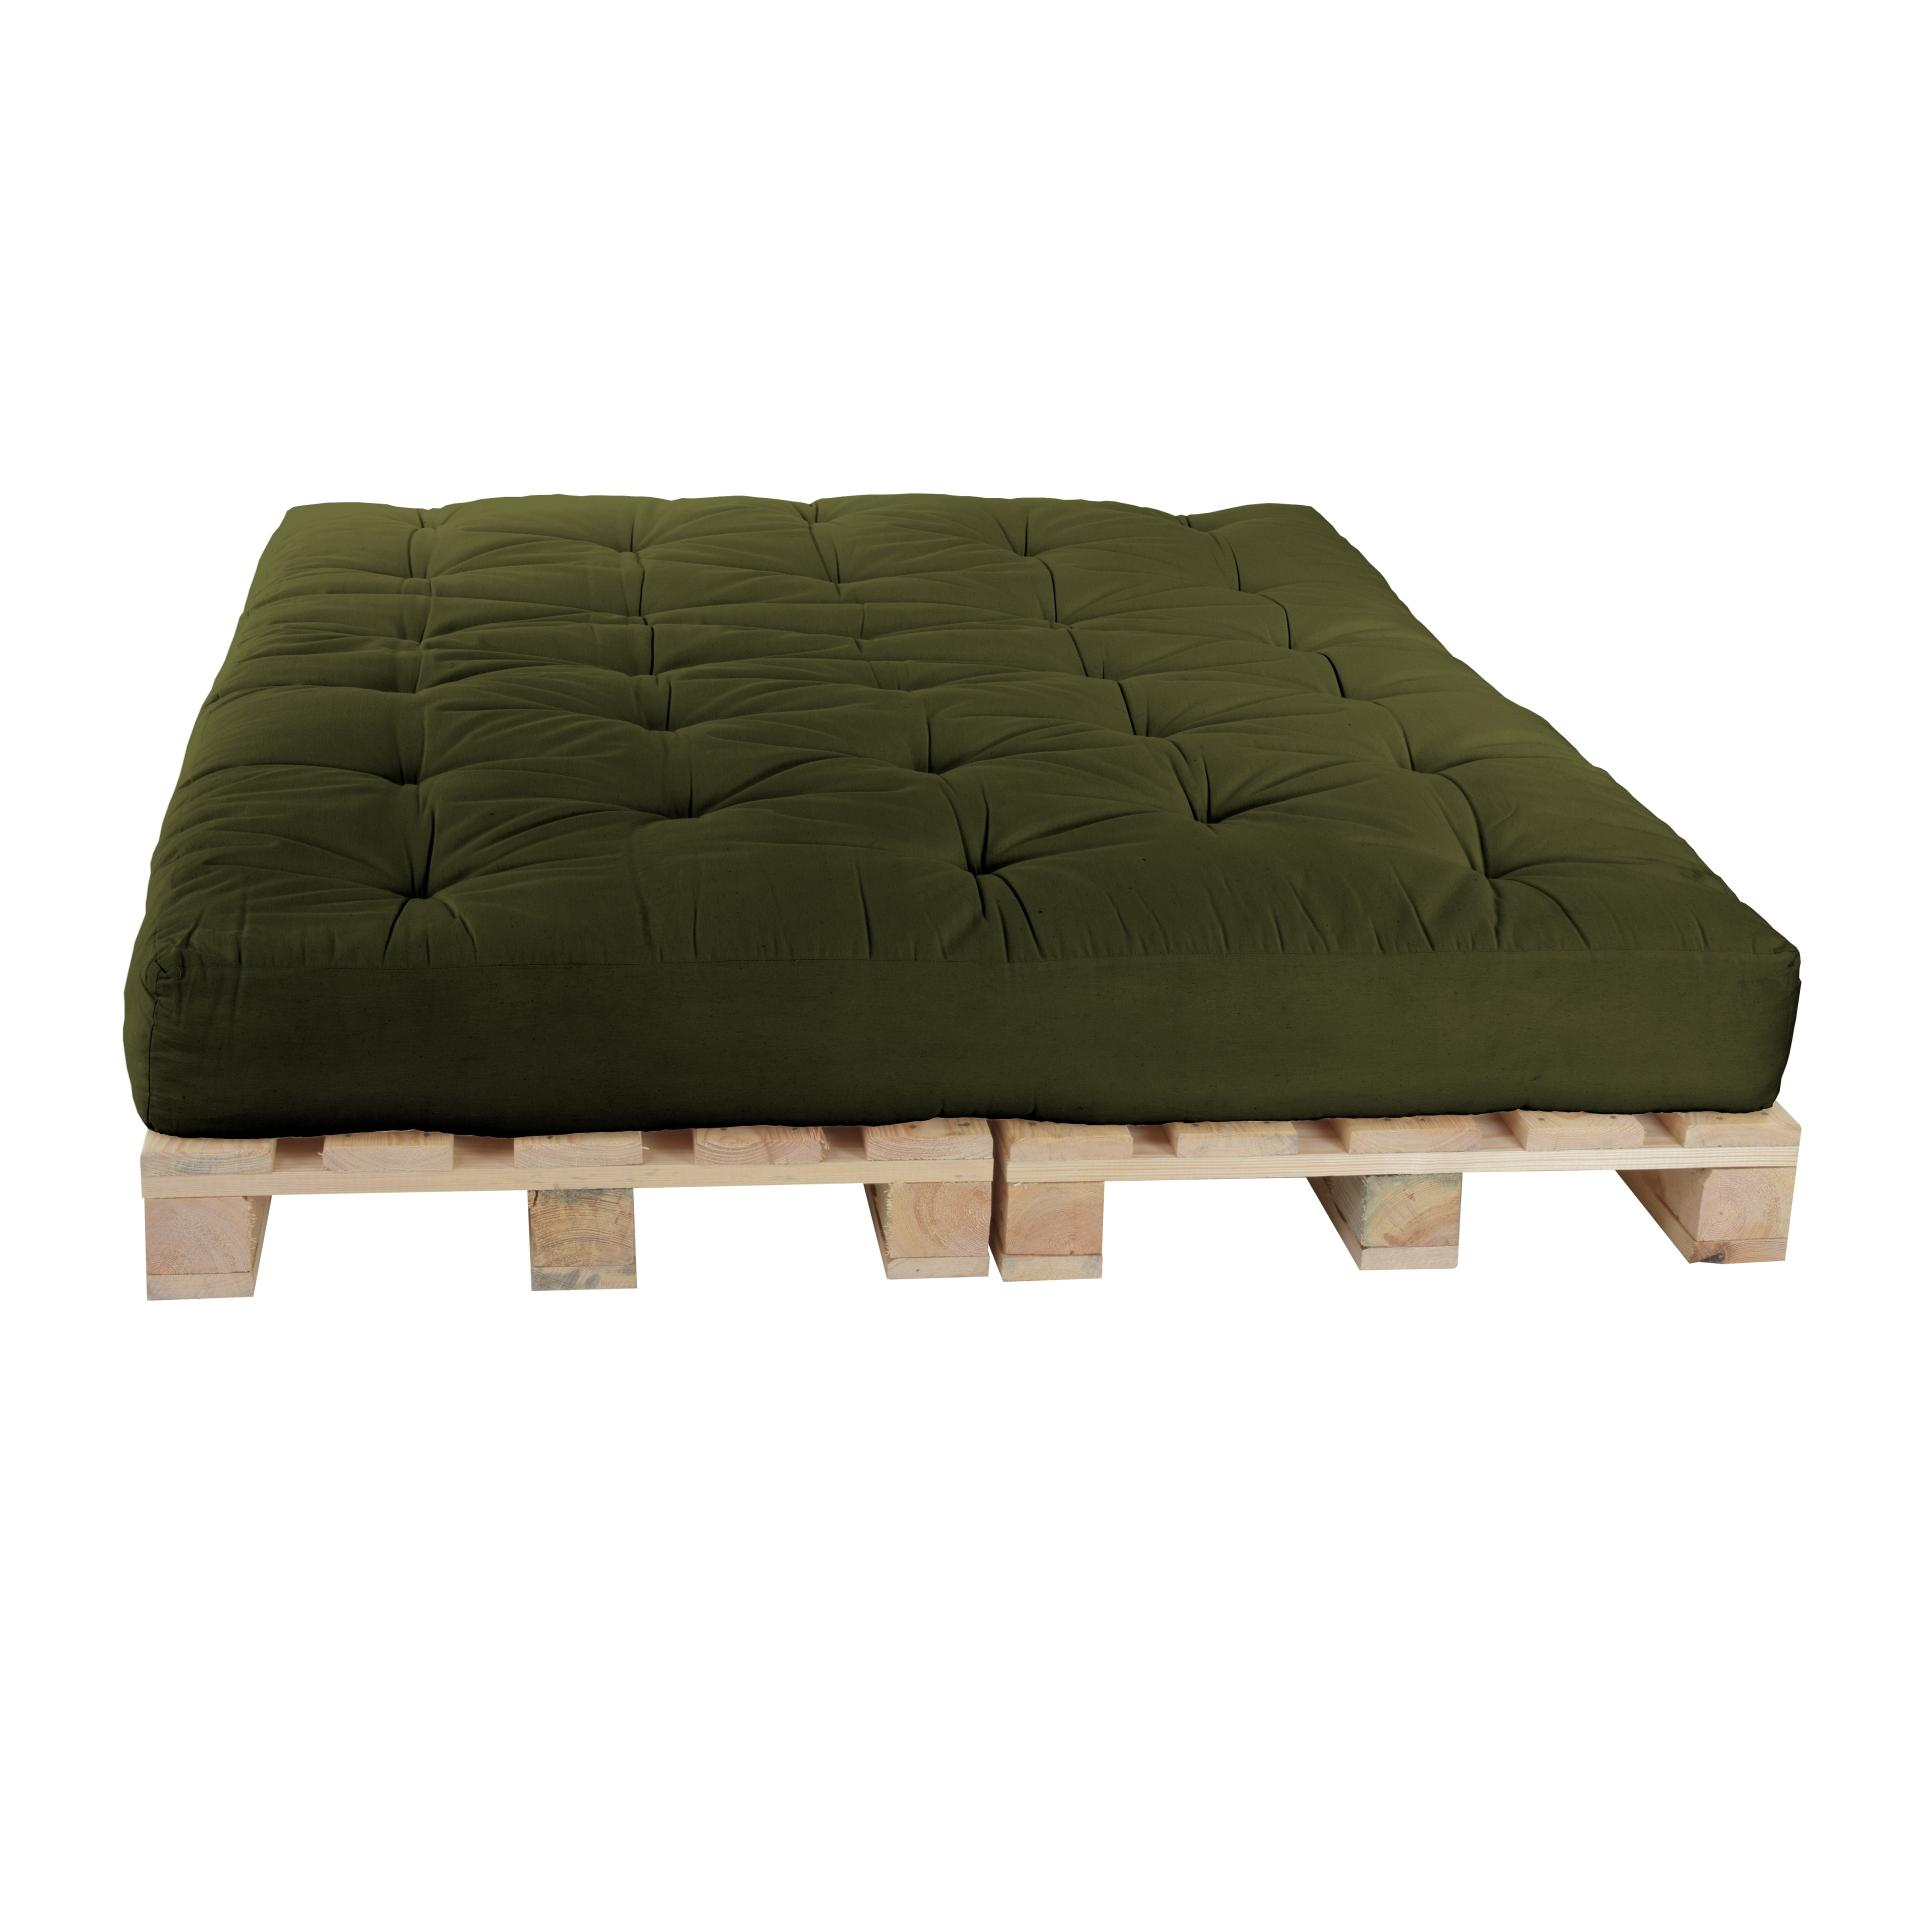 Futon World Berlin Pallet Bed 160 X 240 Cm Together With Pallets Color F52 Olive